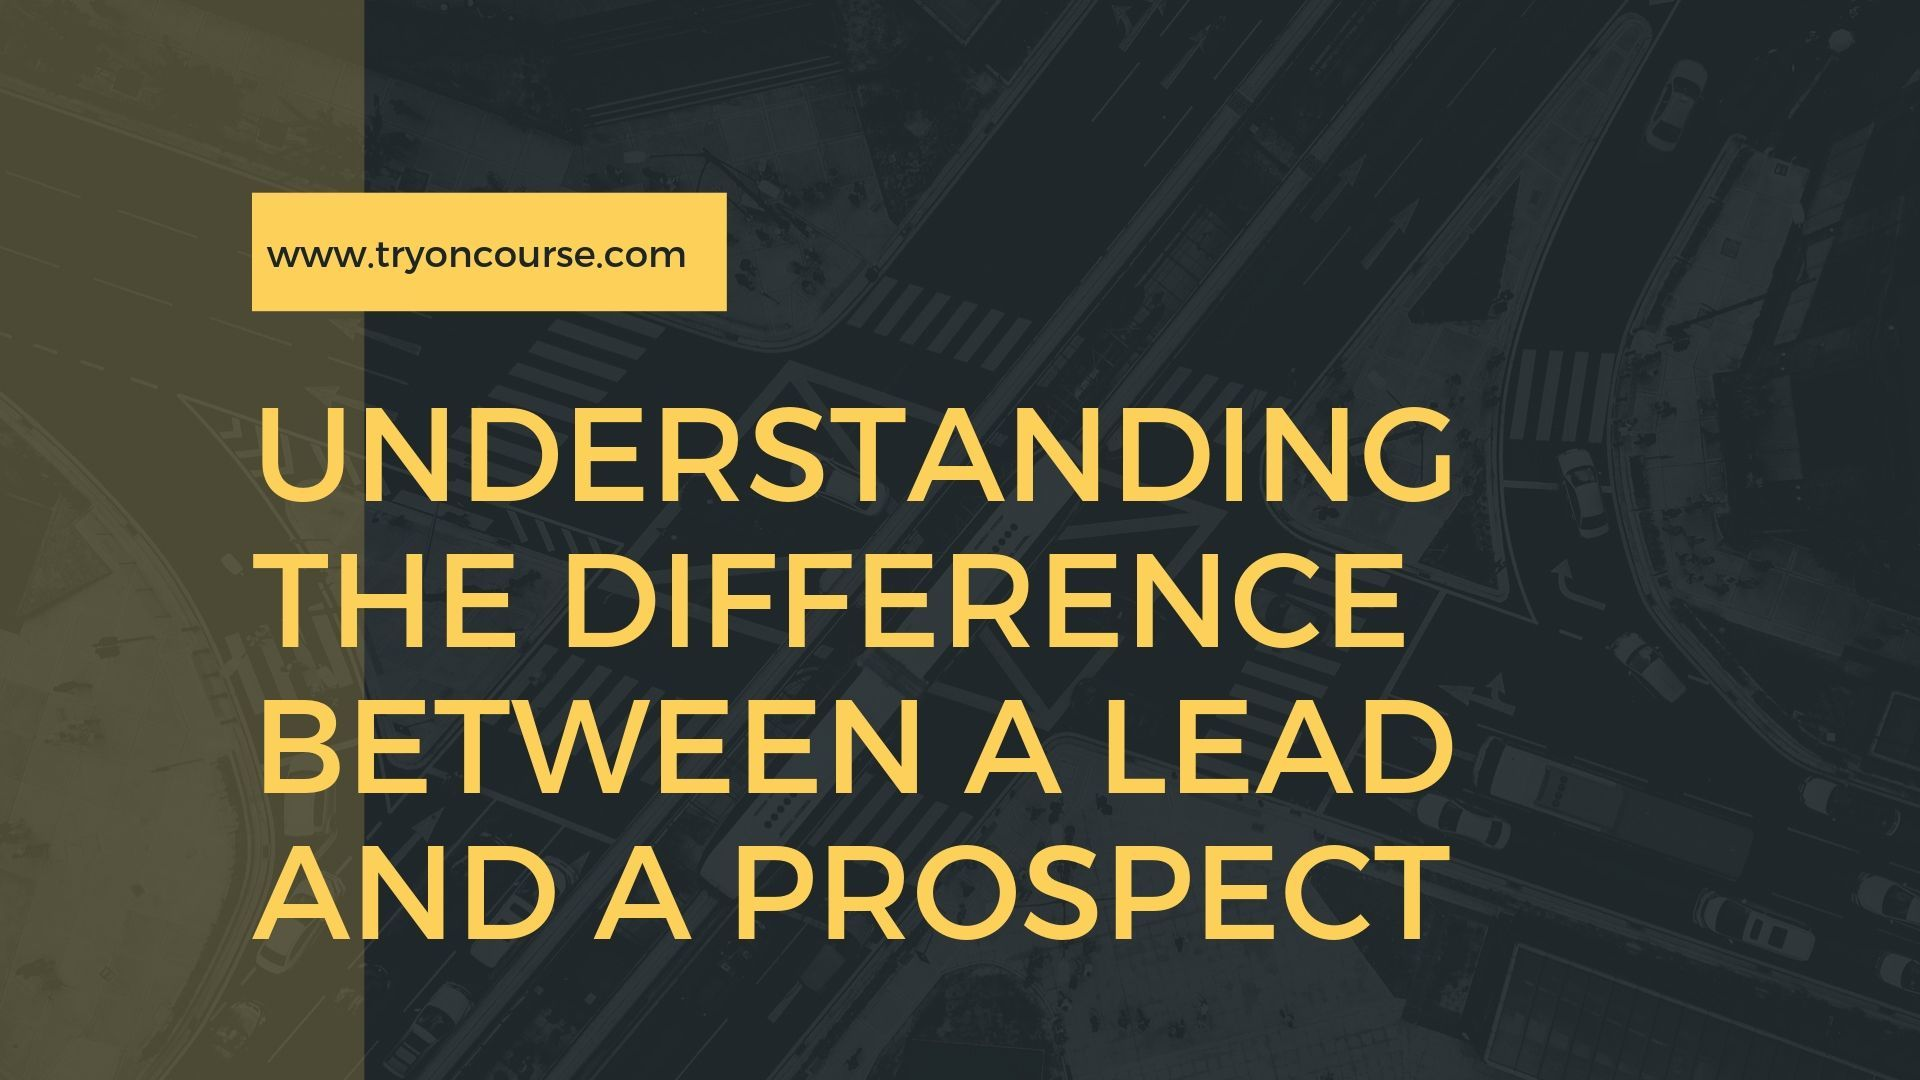 Understanding the difference between a lead and a prospect